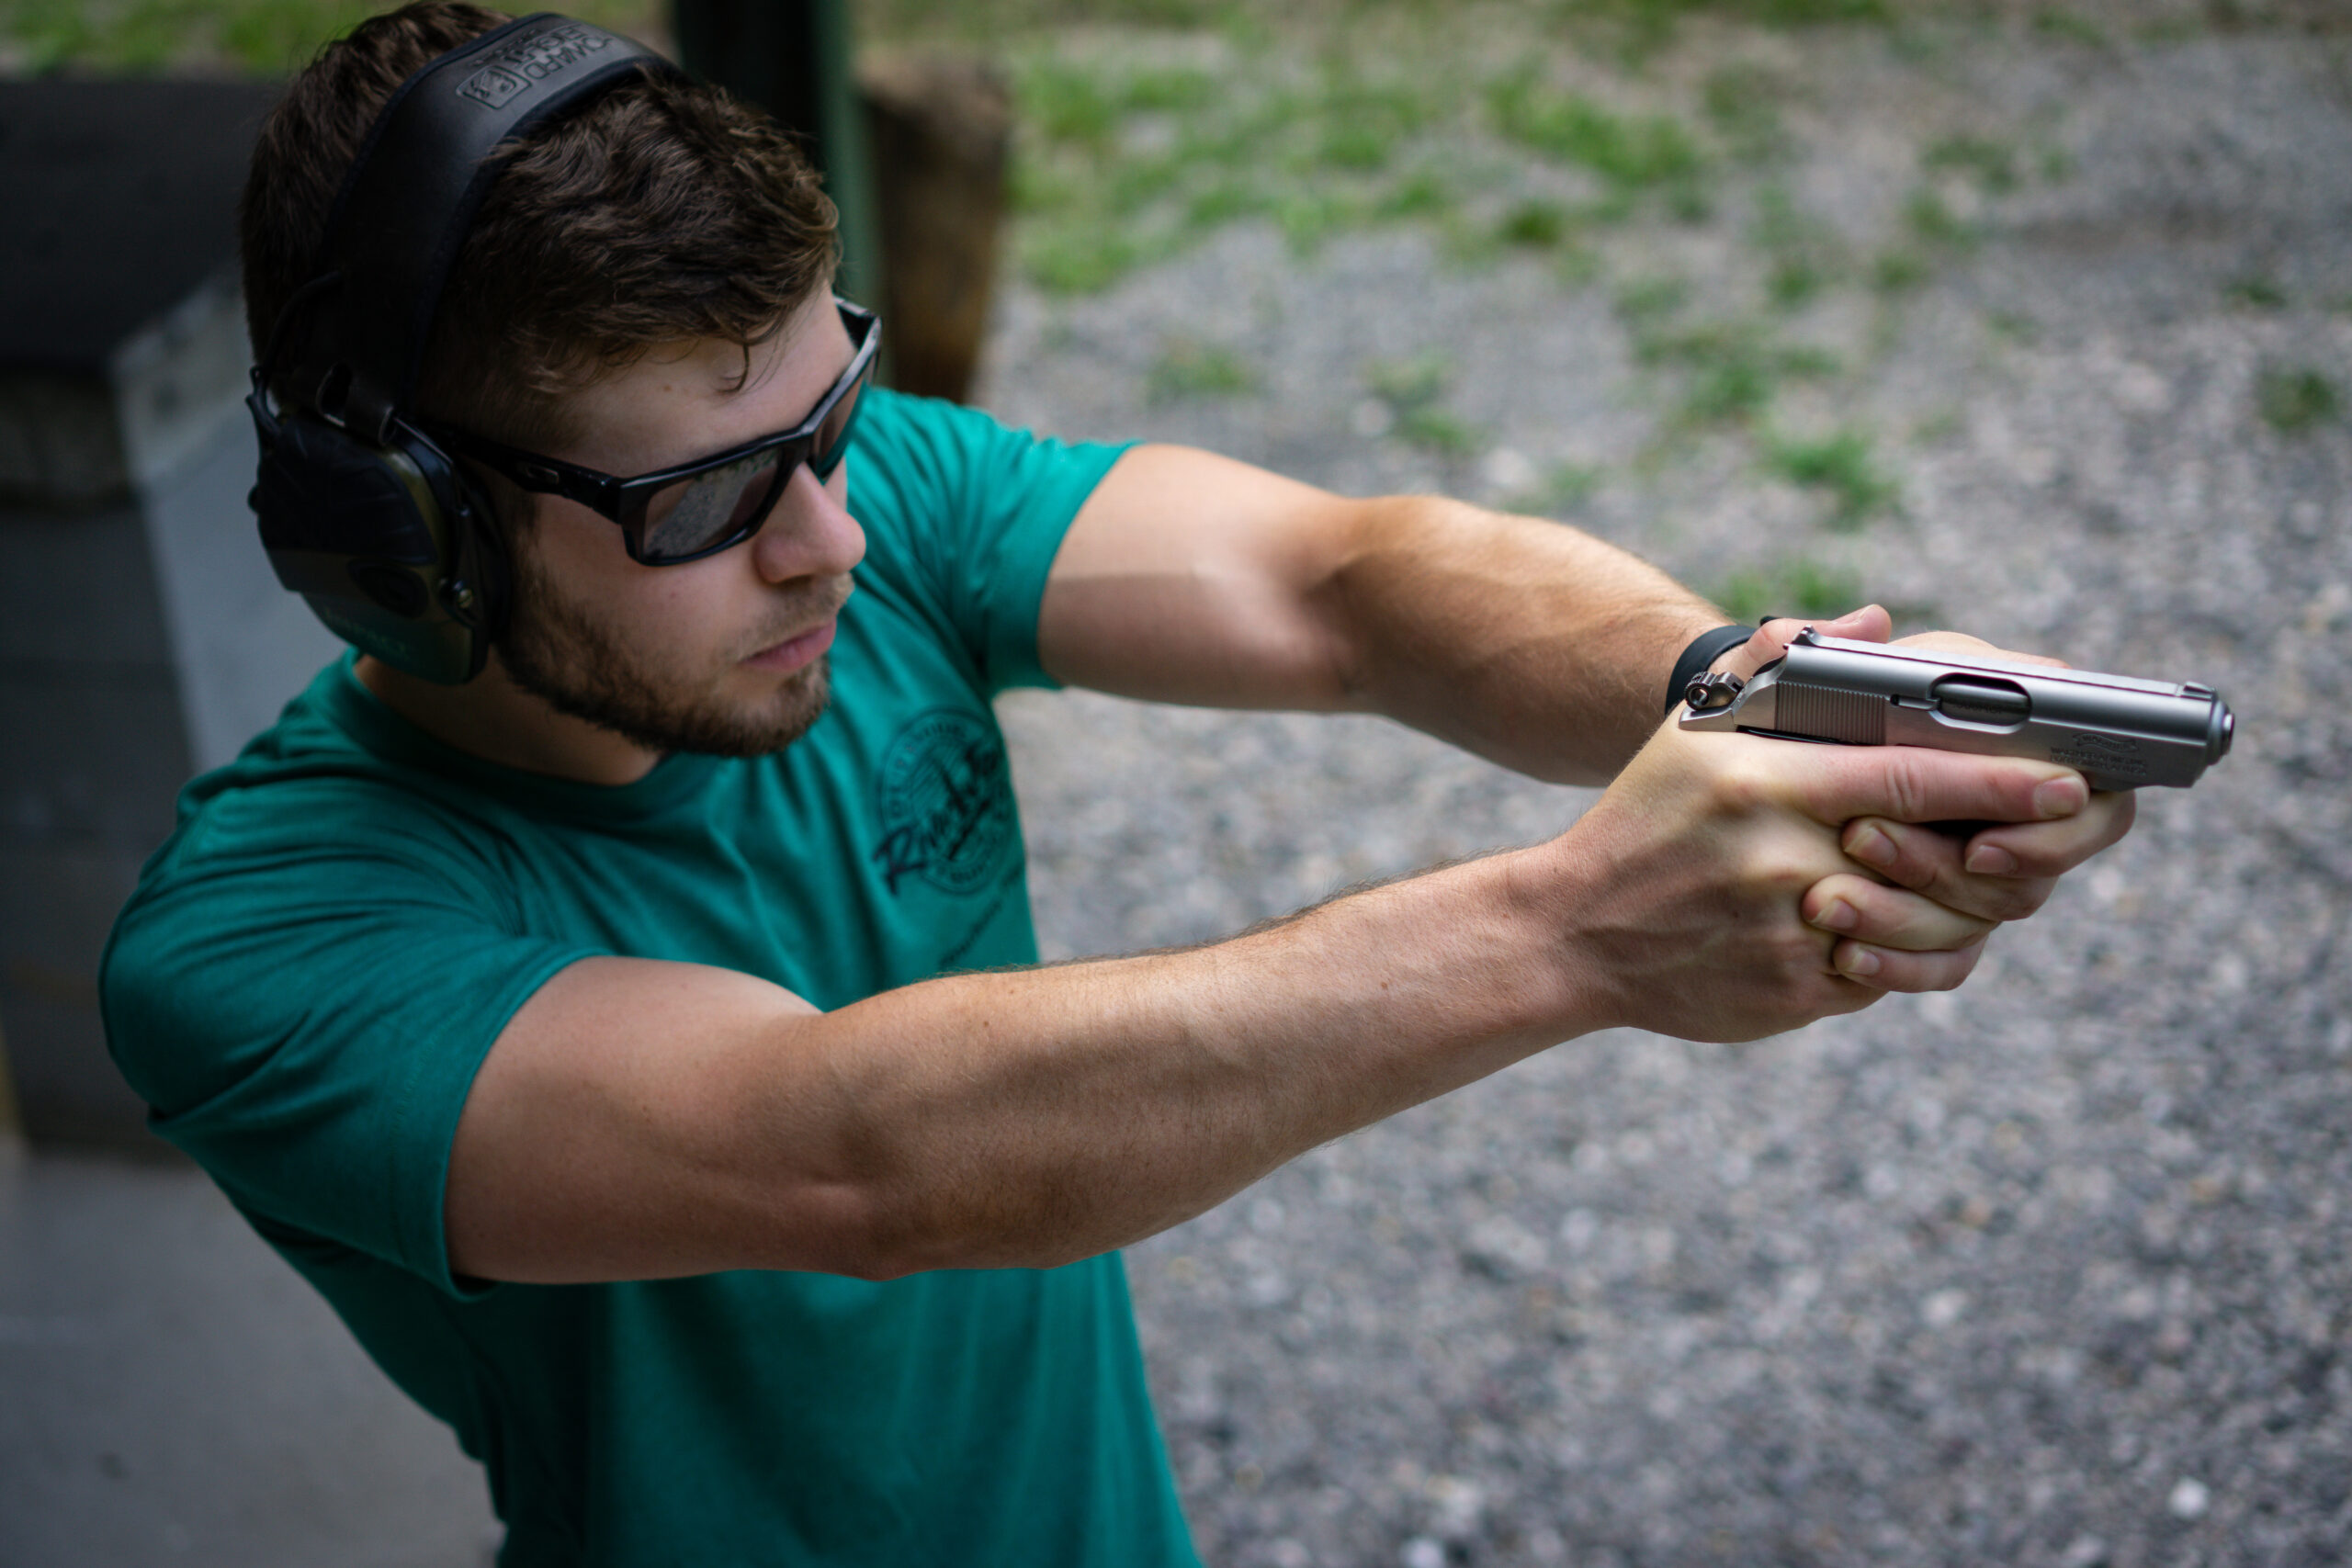 The author firing the Walther PPK pistol at a shooting range as part of the testing done in this review.